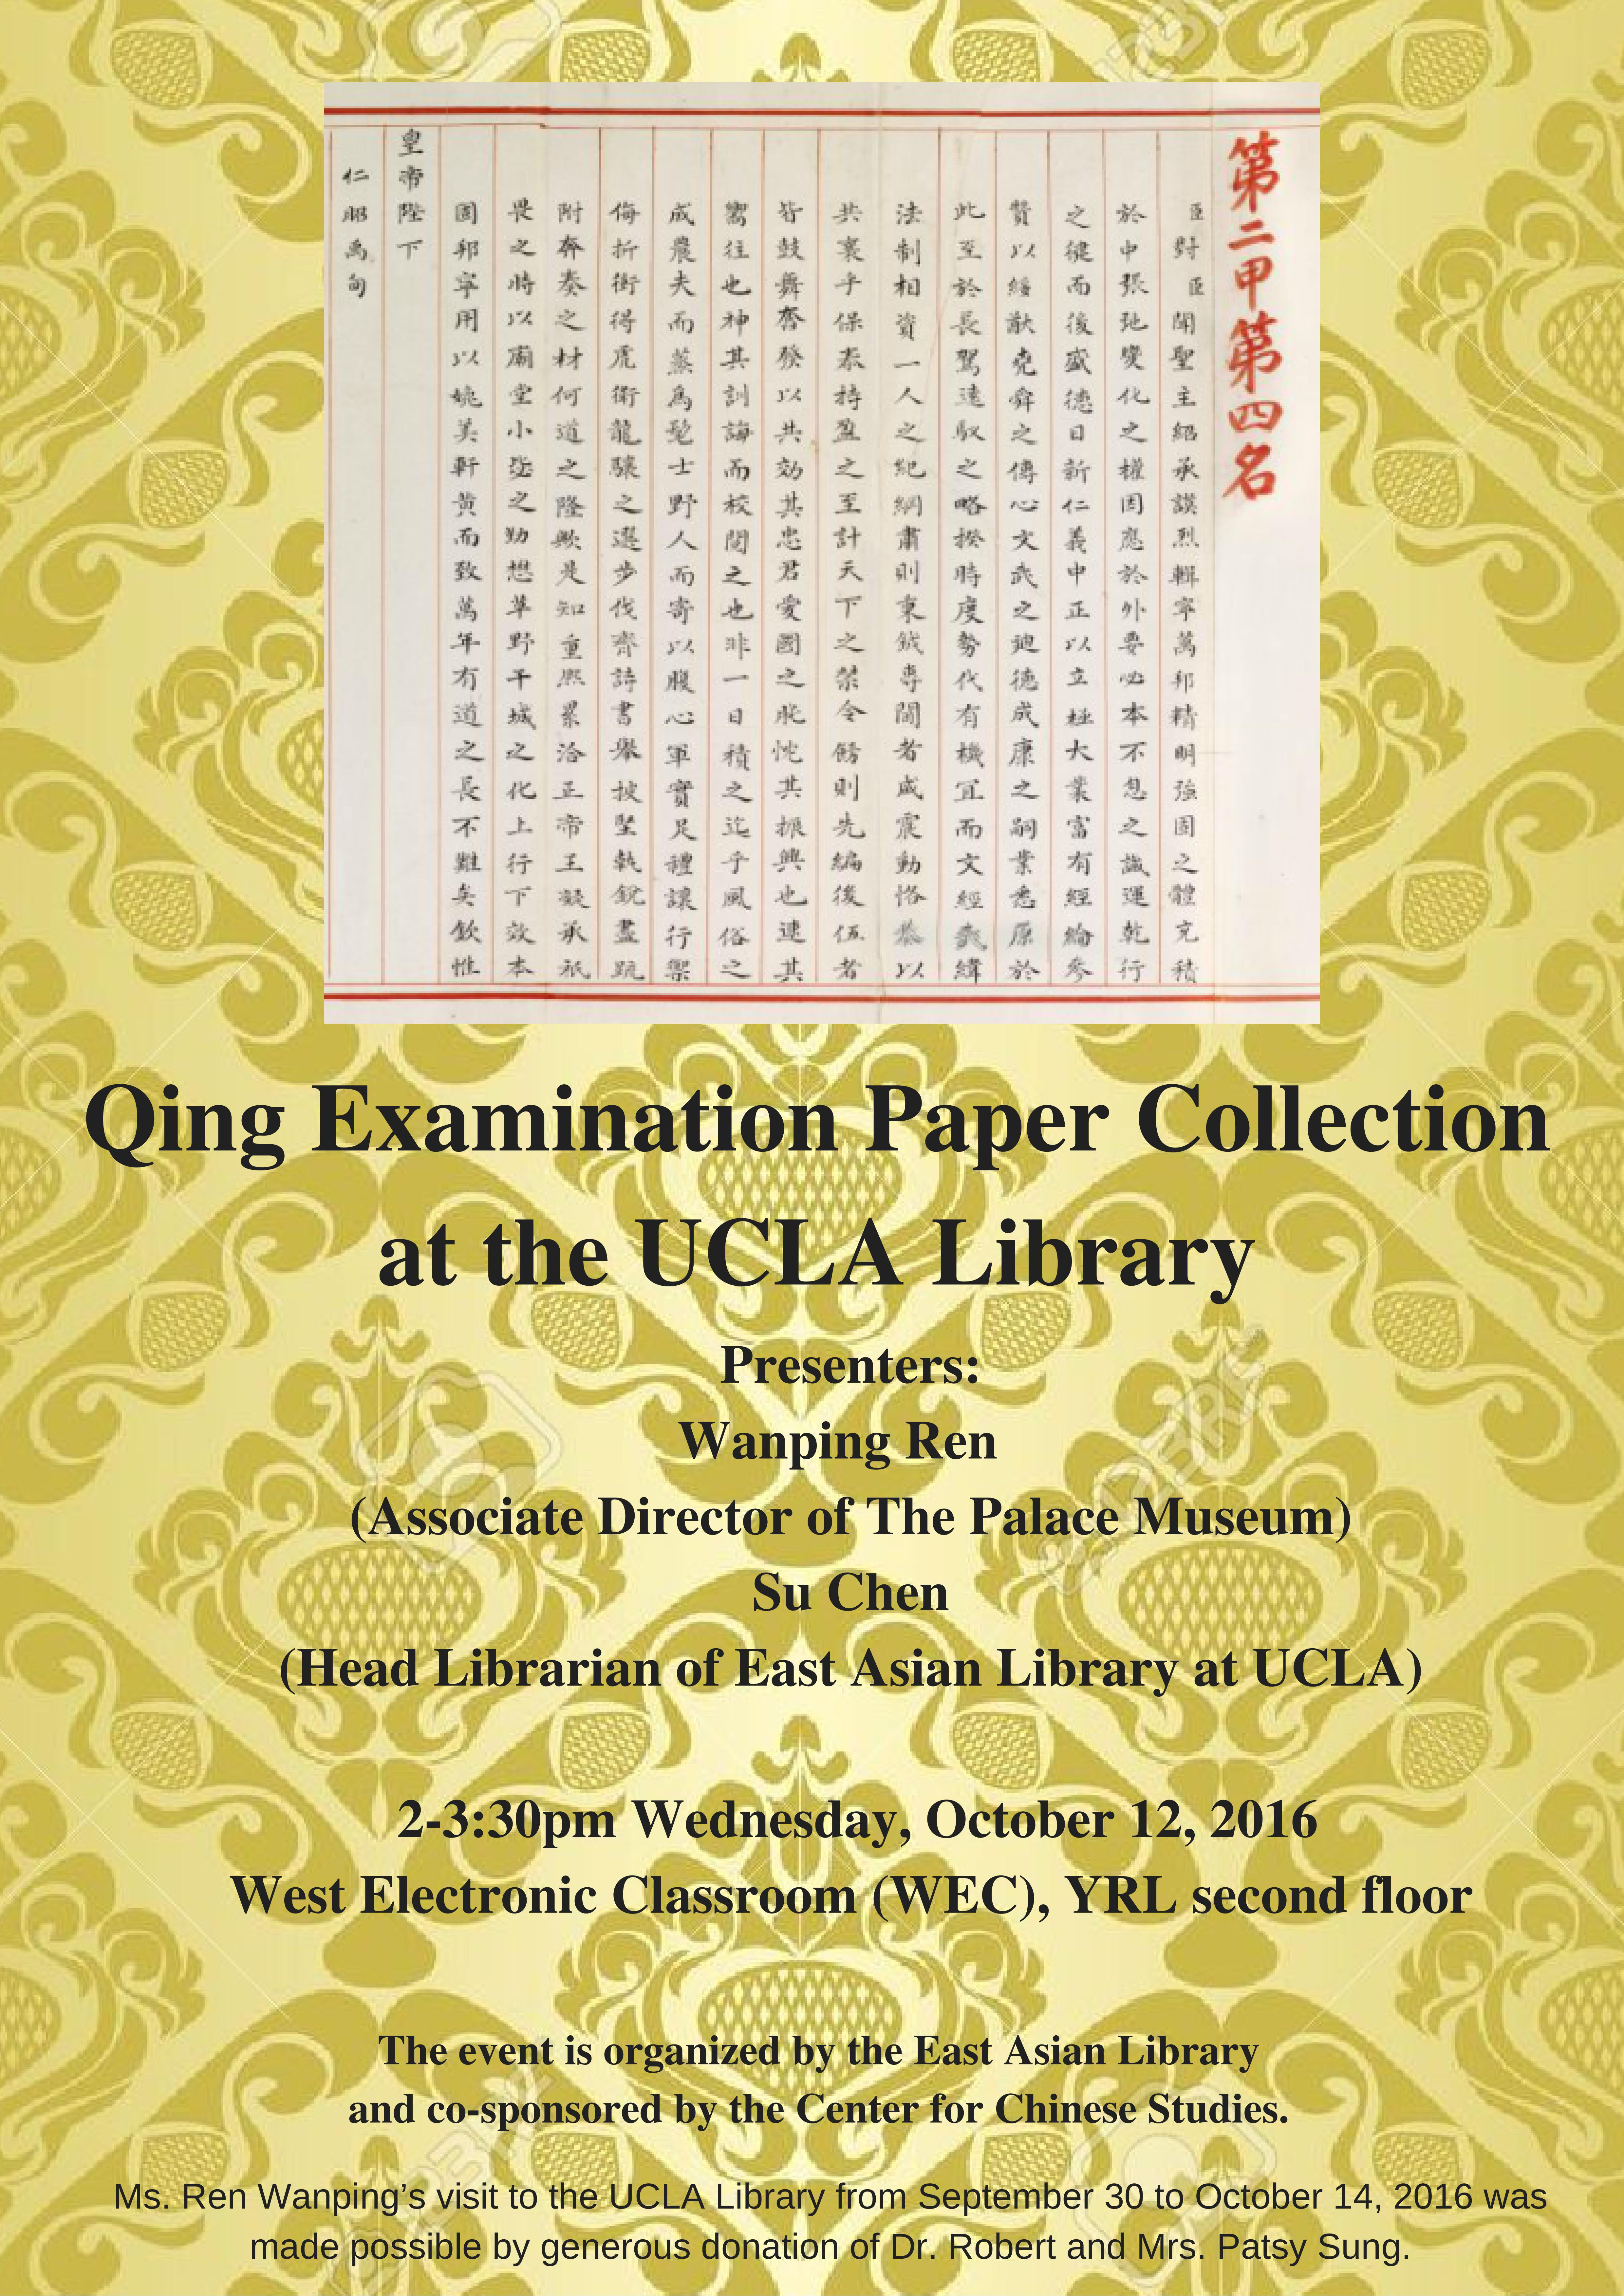 Qing examination paper collection at the UCLA Library